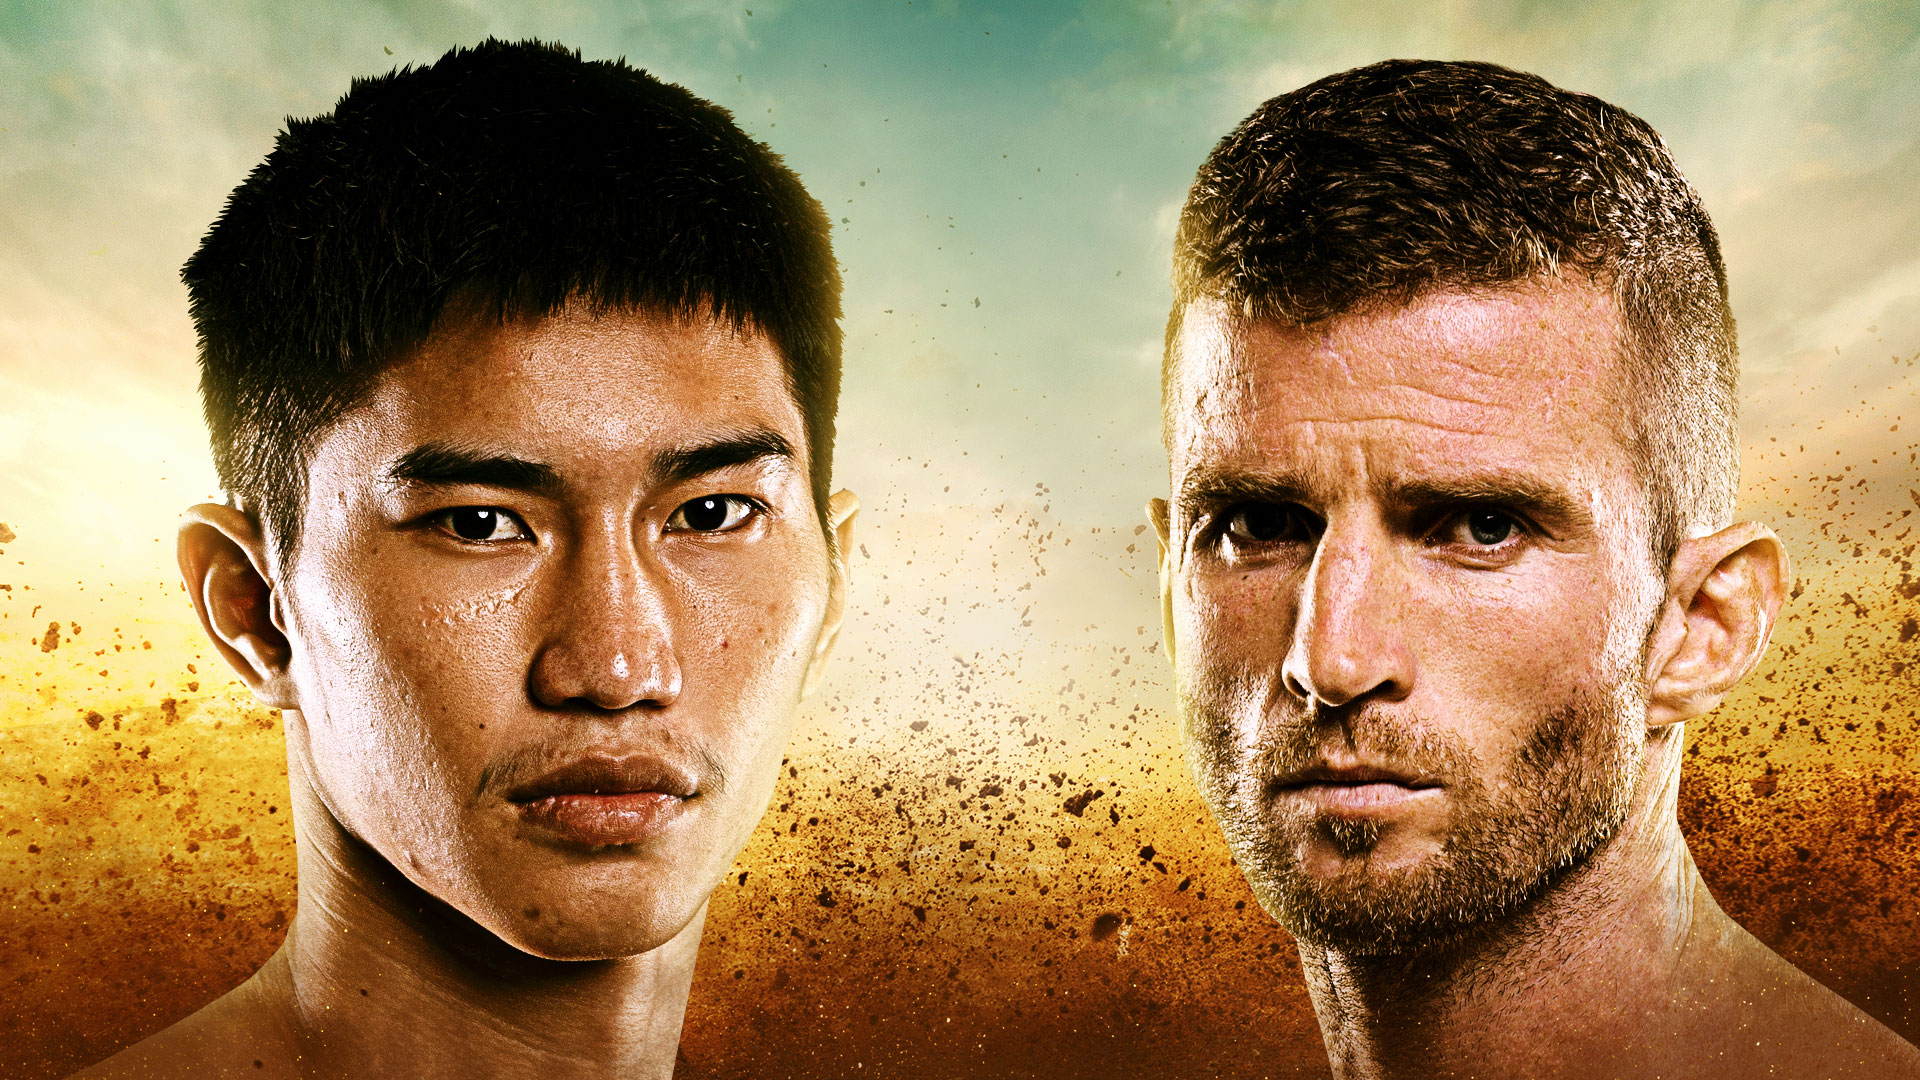 Tawanchai PK.Saenchai Muaythaigym fights Sean Clancy at ONE: DANGAL in the co-main event